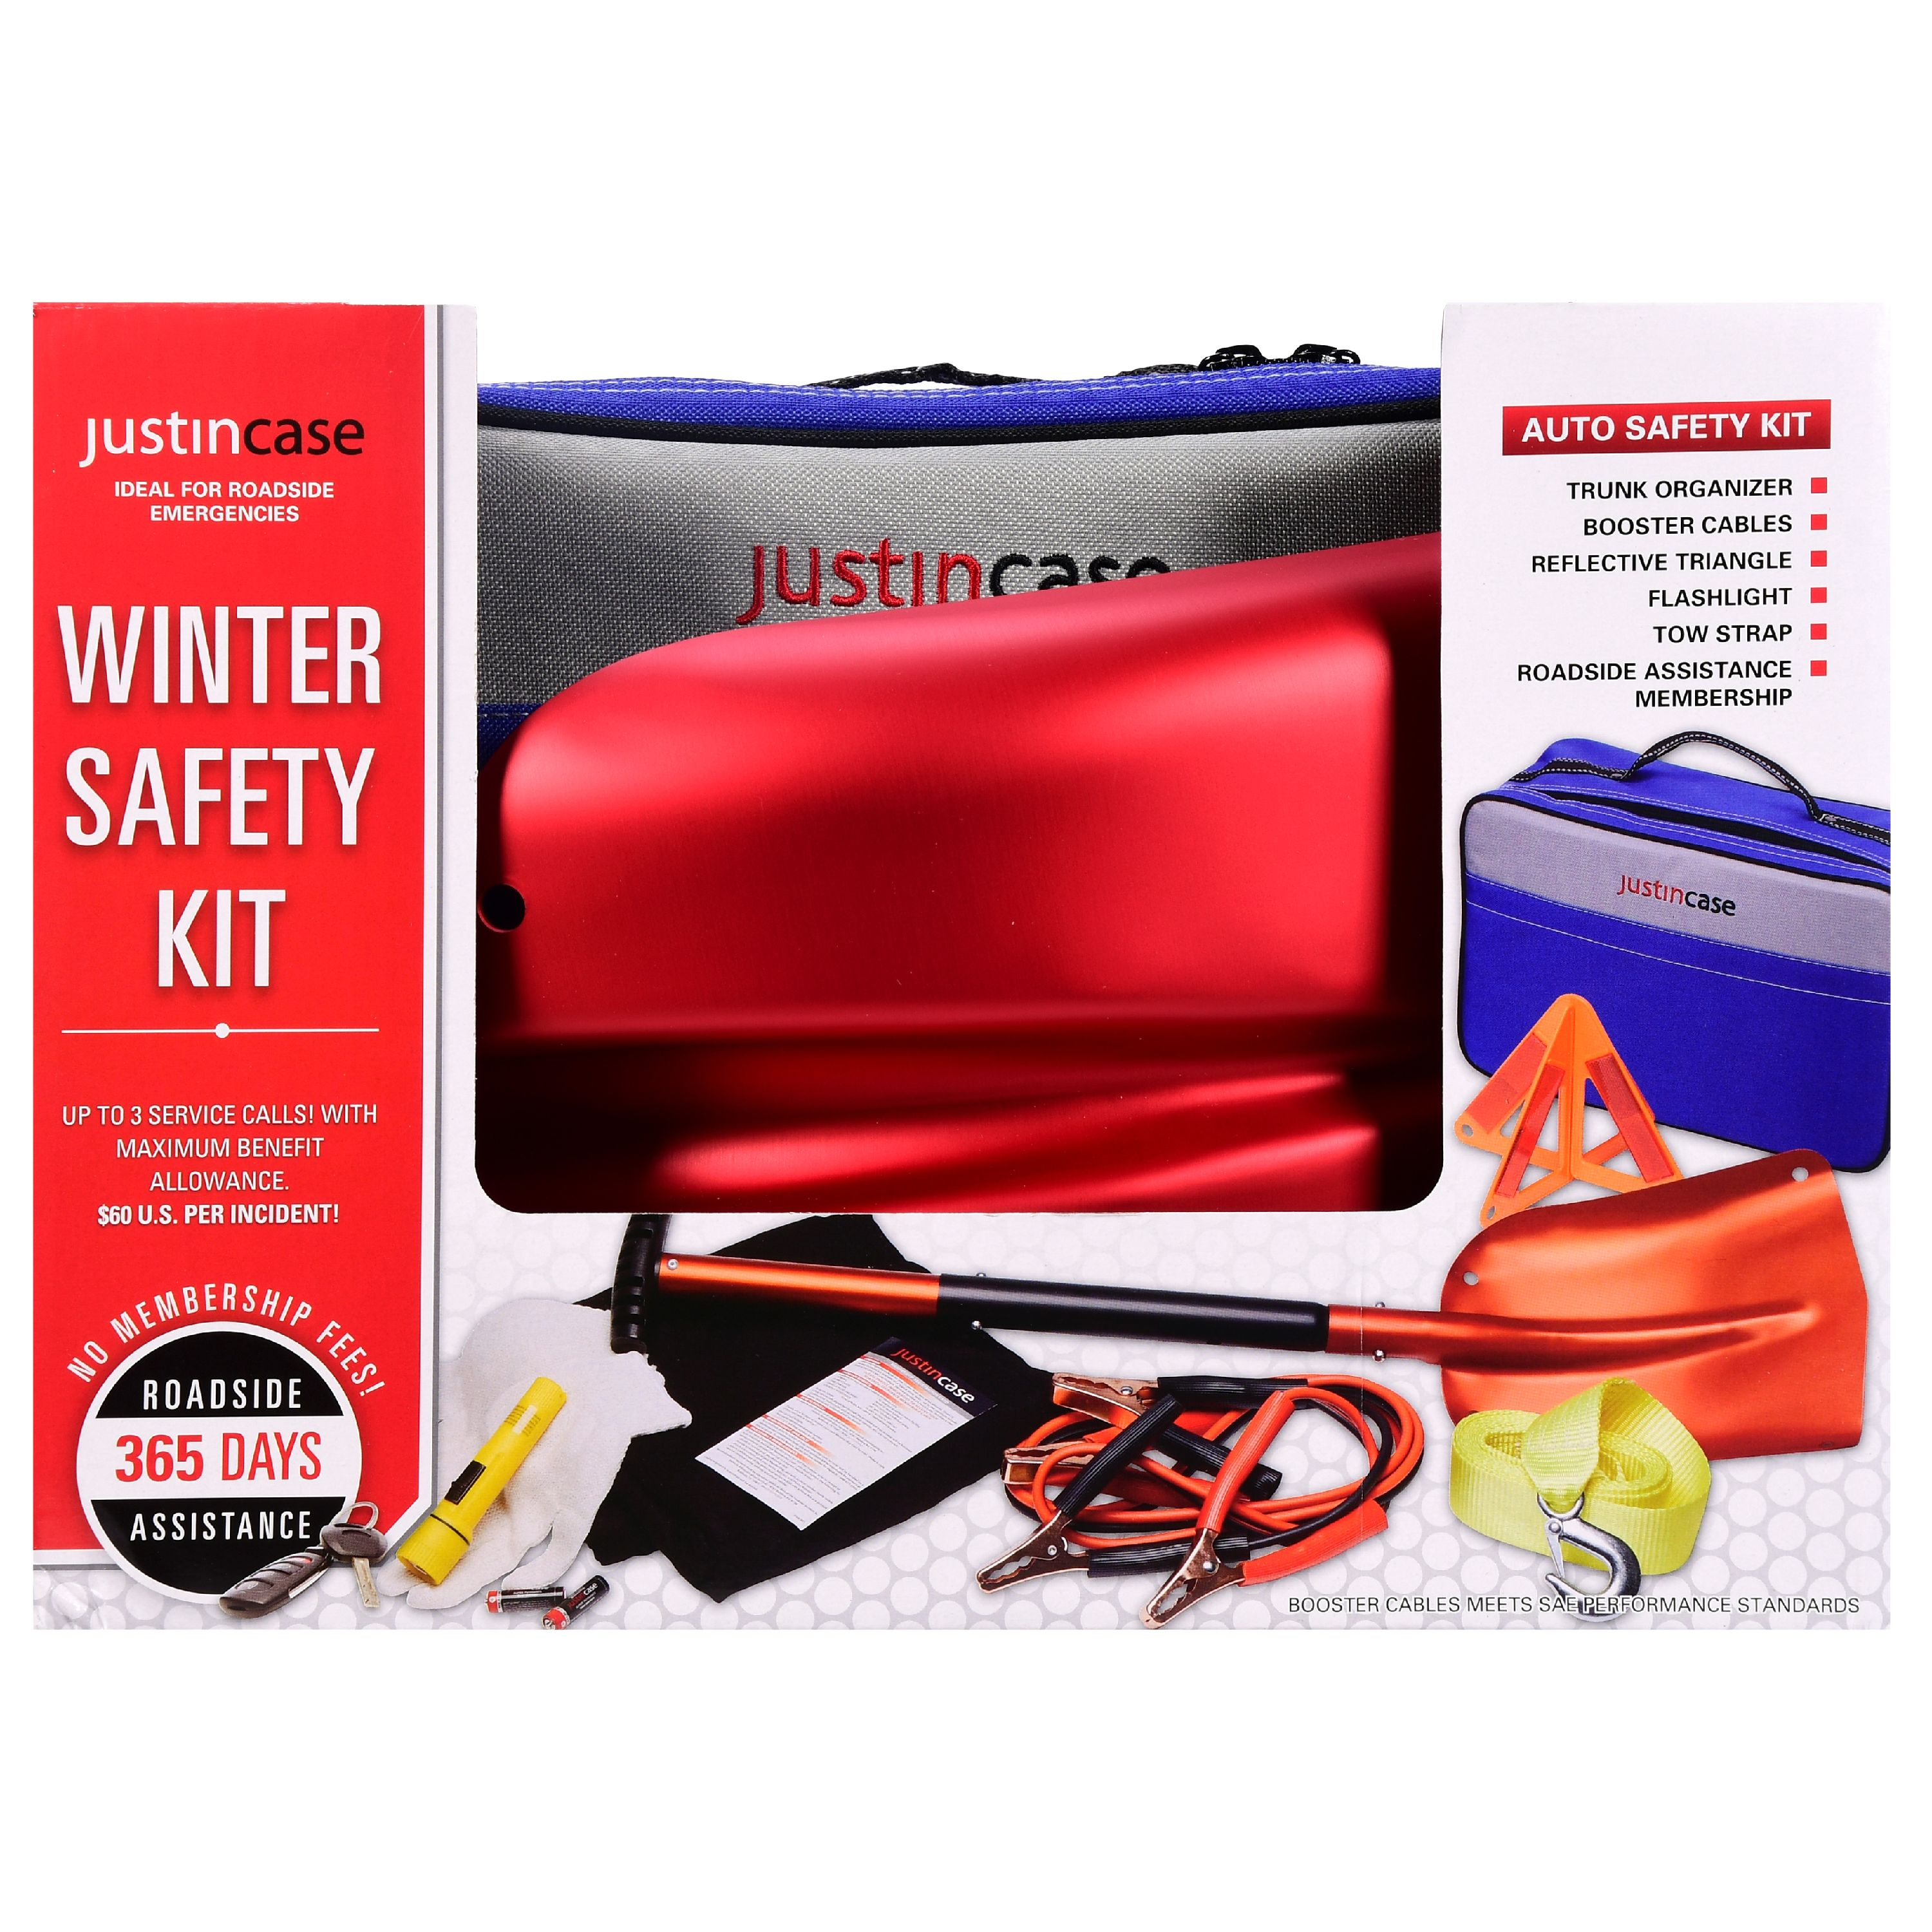 Justin case winter car safety kit aluminum shovel factory sealed roadside emerg